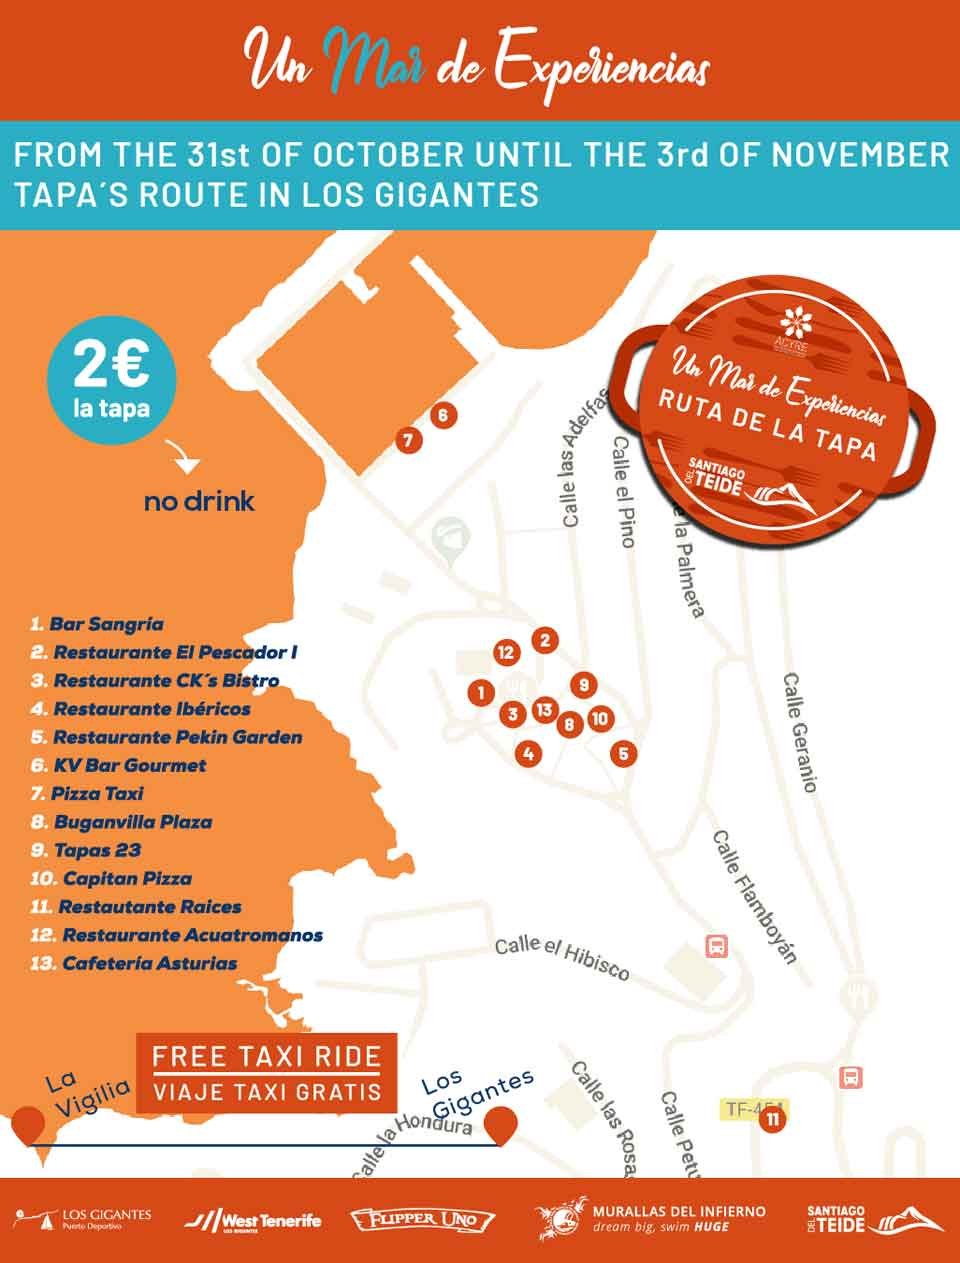 Ruta de la Tapa in Los Gigantes from today to Sunday Ruta_t10